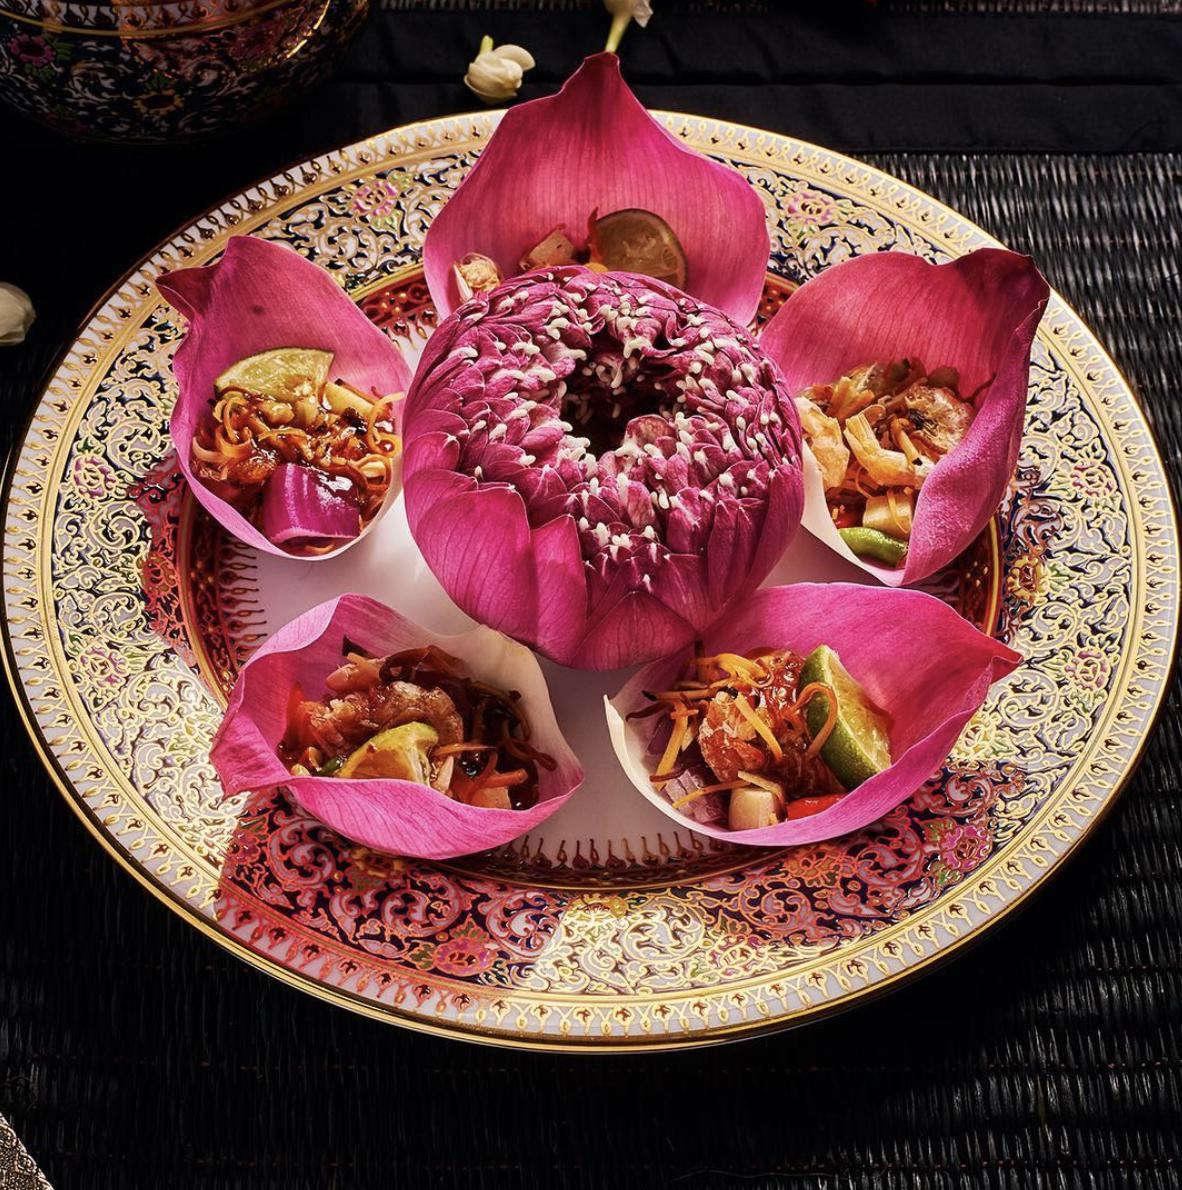 Miang Kham Bua Luang replaces the typical wildbetal leaves with the velvety lotus petals while still retaining the usual herbal fillings. All crunchy and flavoursome!  #AmazingThailand #OpenToTheNewShades #ReviewThailand #MiangKhamBuaLuang<br>http://pic.twitter.com/3PUaGZShqY